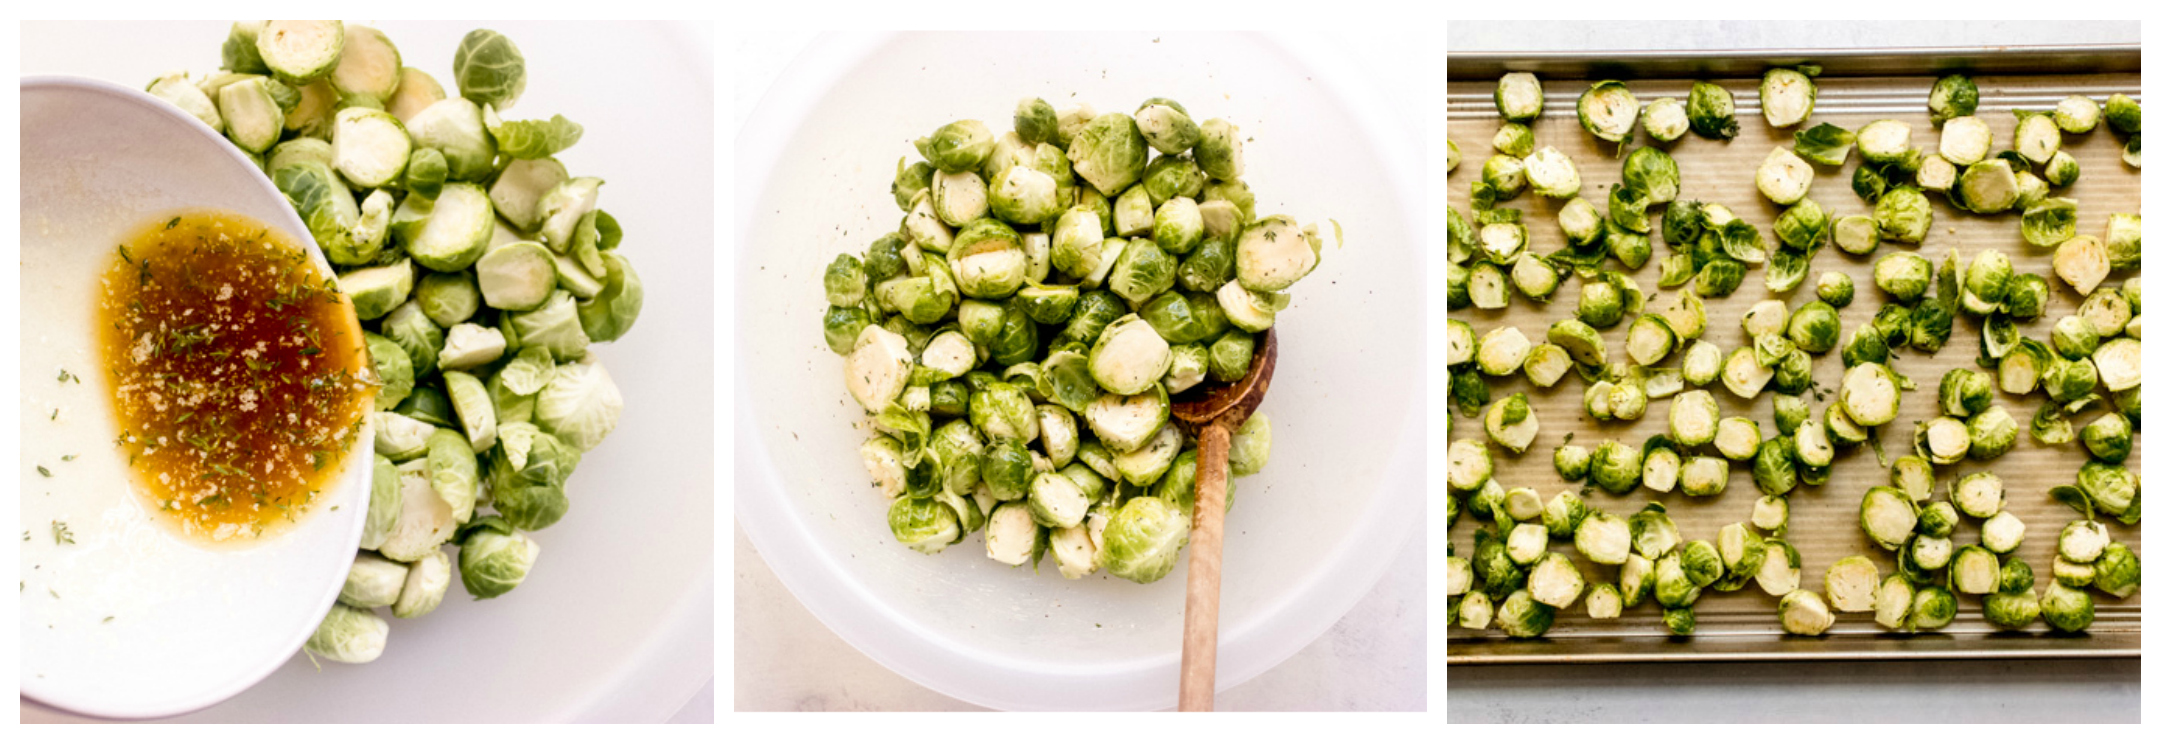 brussel sprouts on a sheet pan